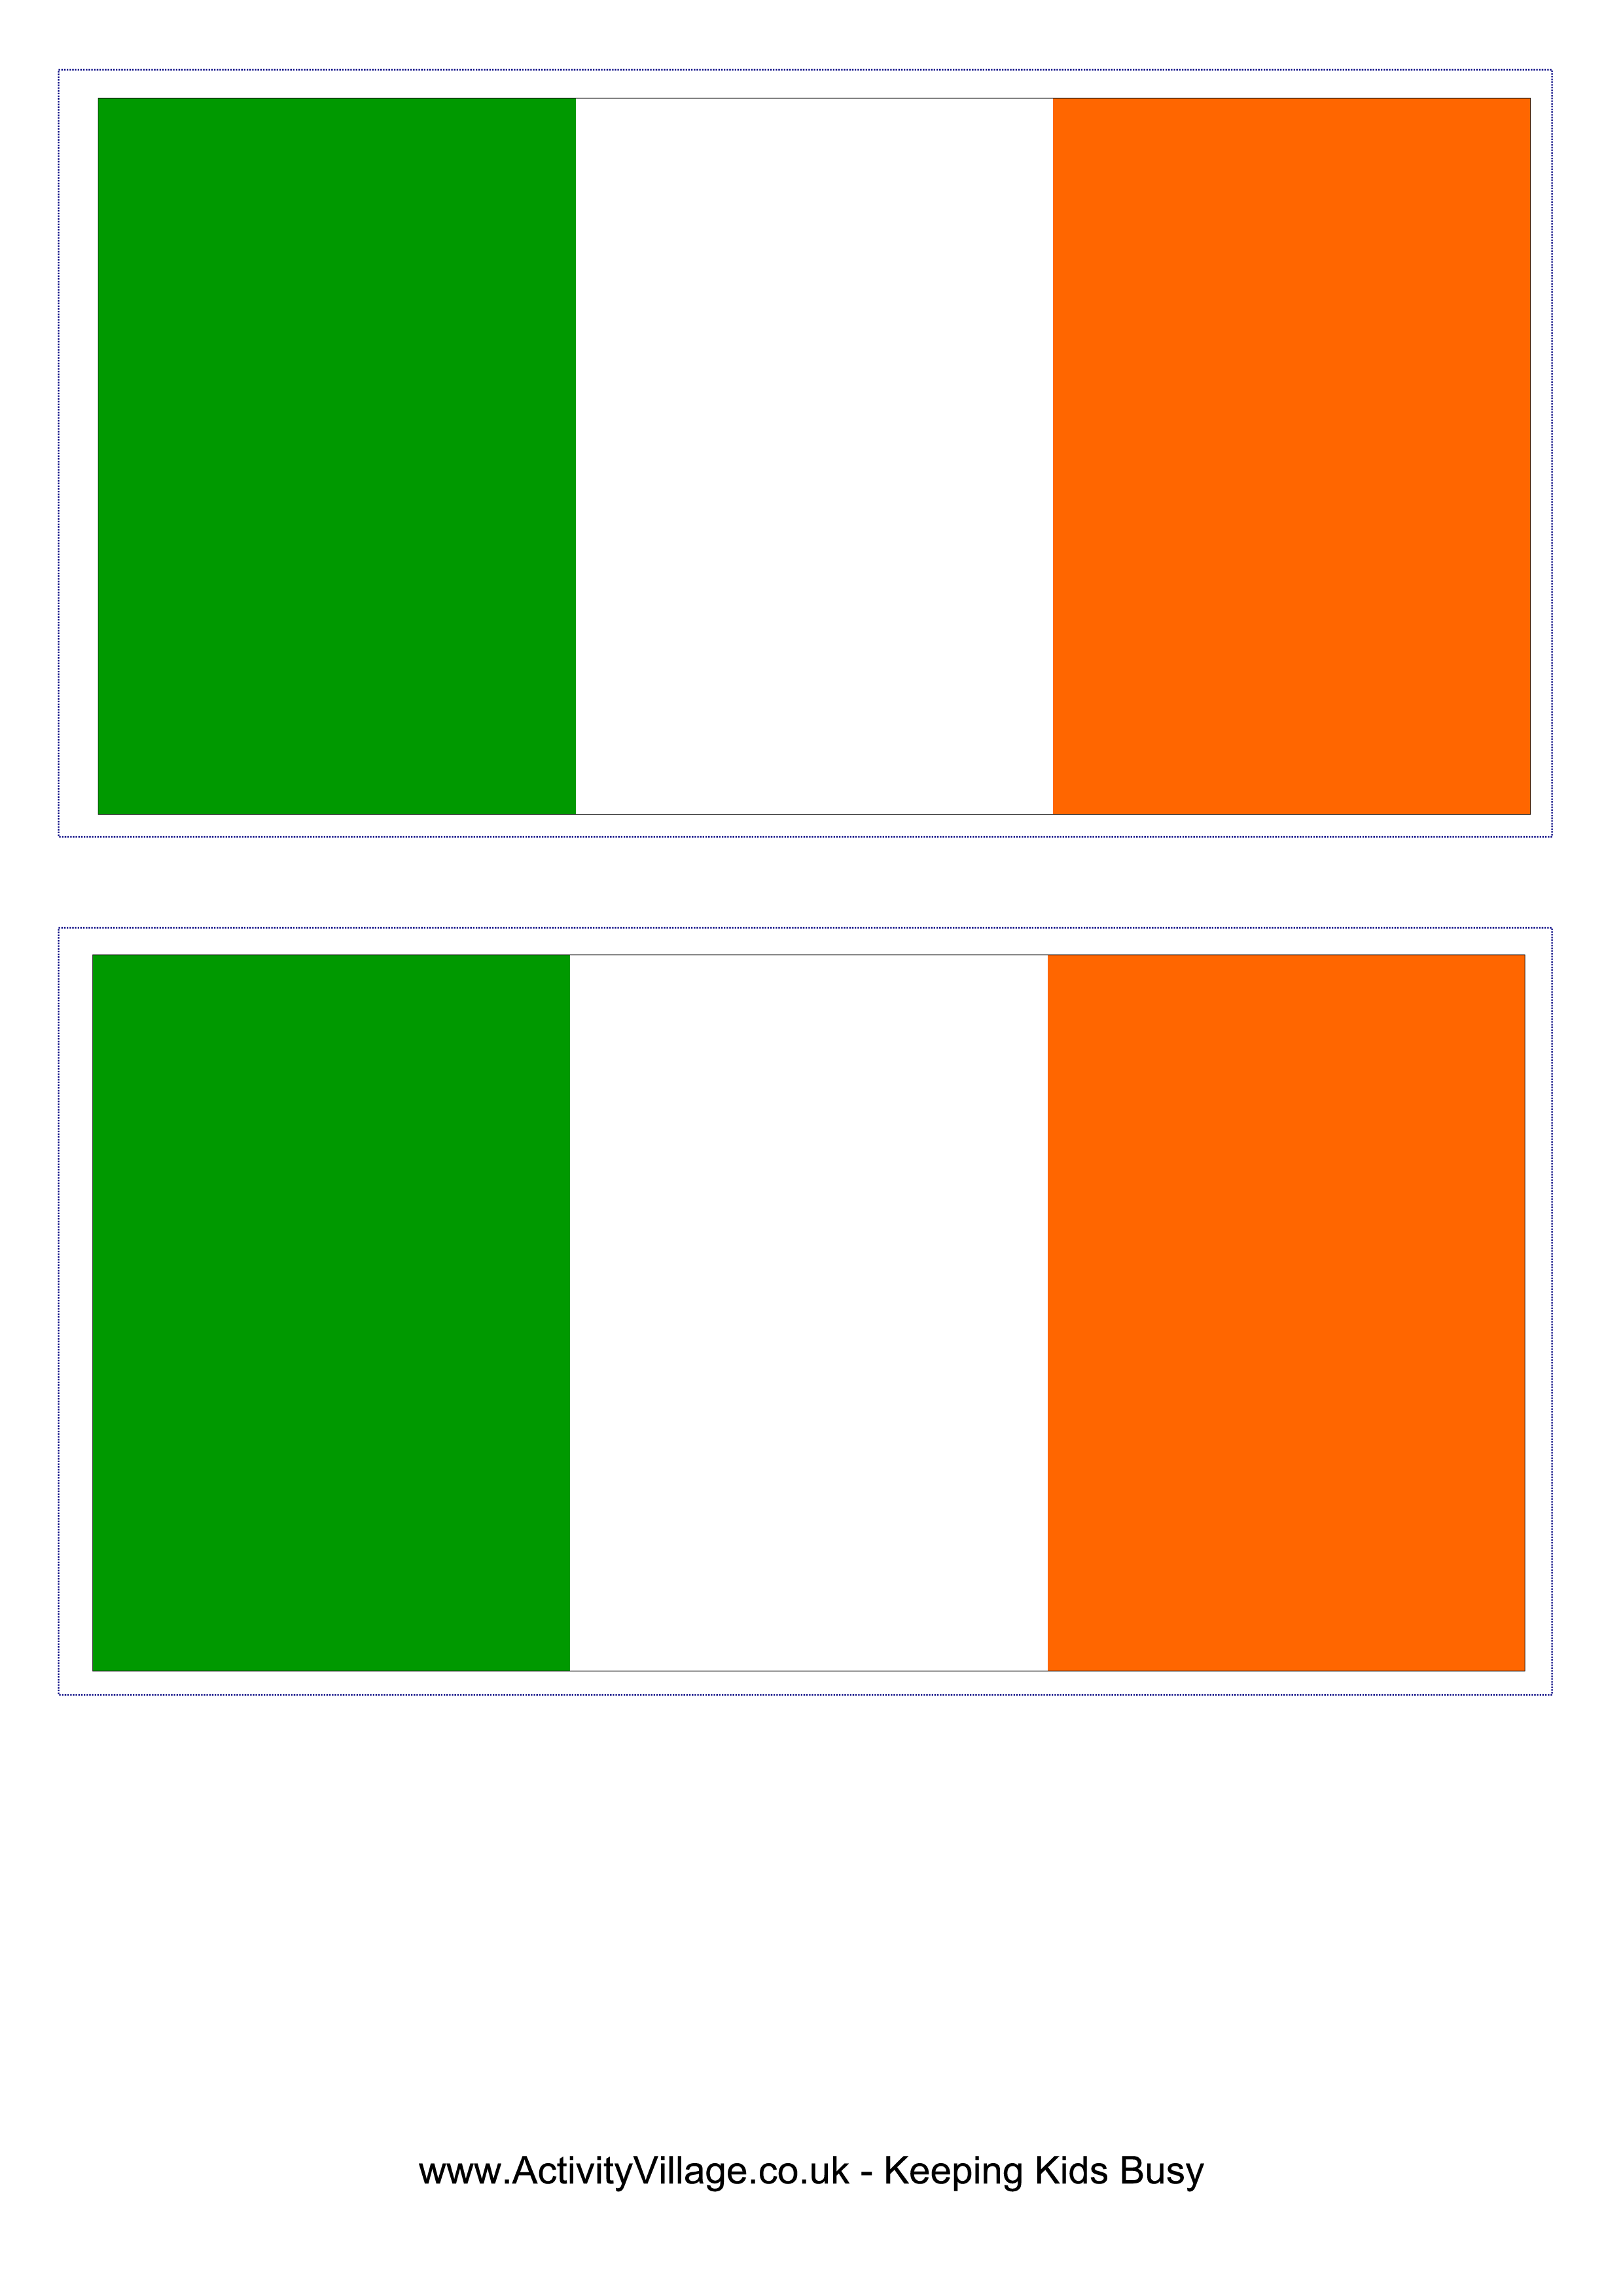 picture regarding Flag of Ireland Printable named Irish Flag - Cost-free Printable Irish Flag eire Flag